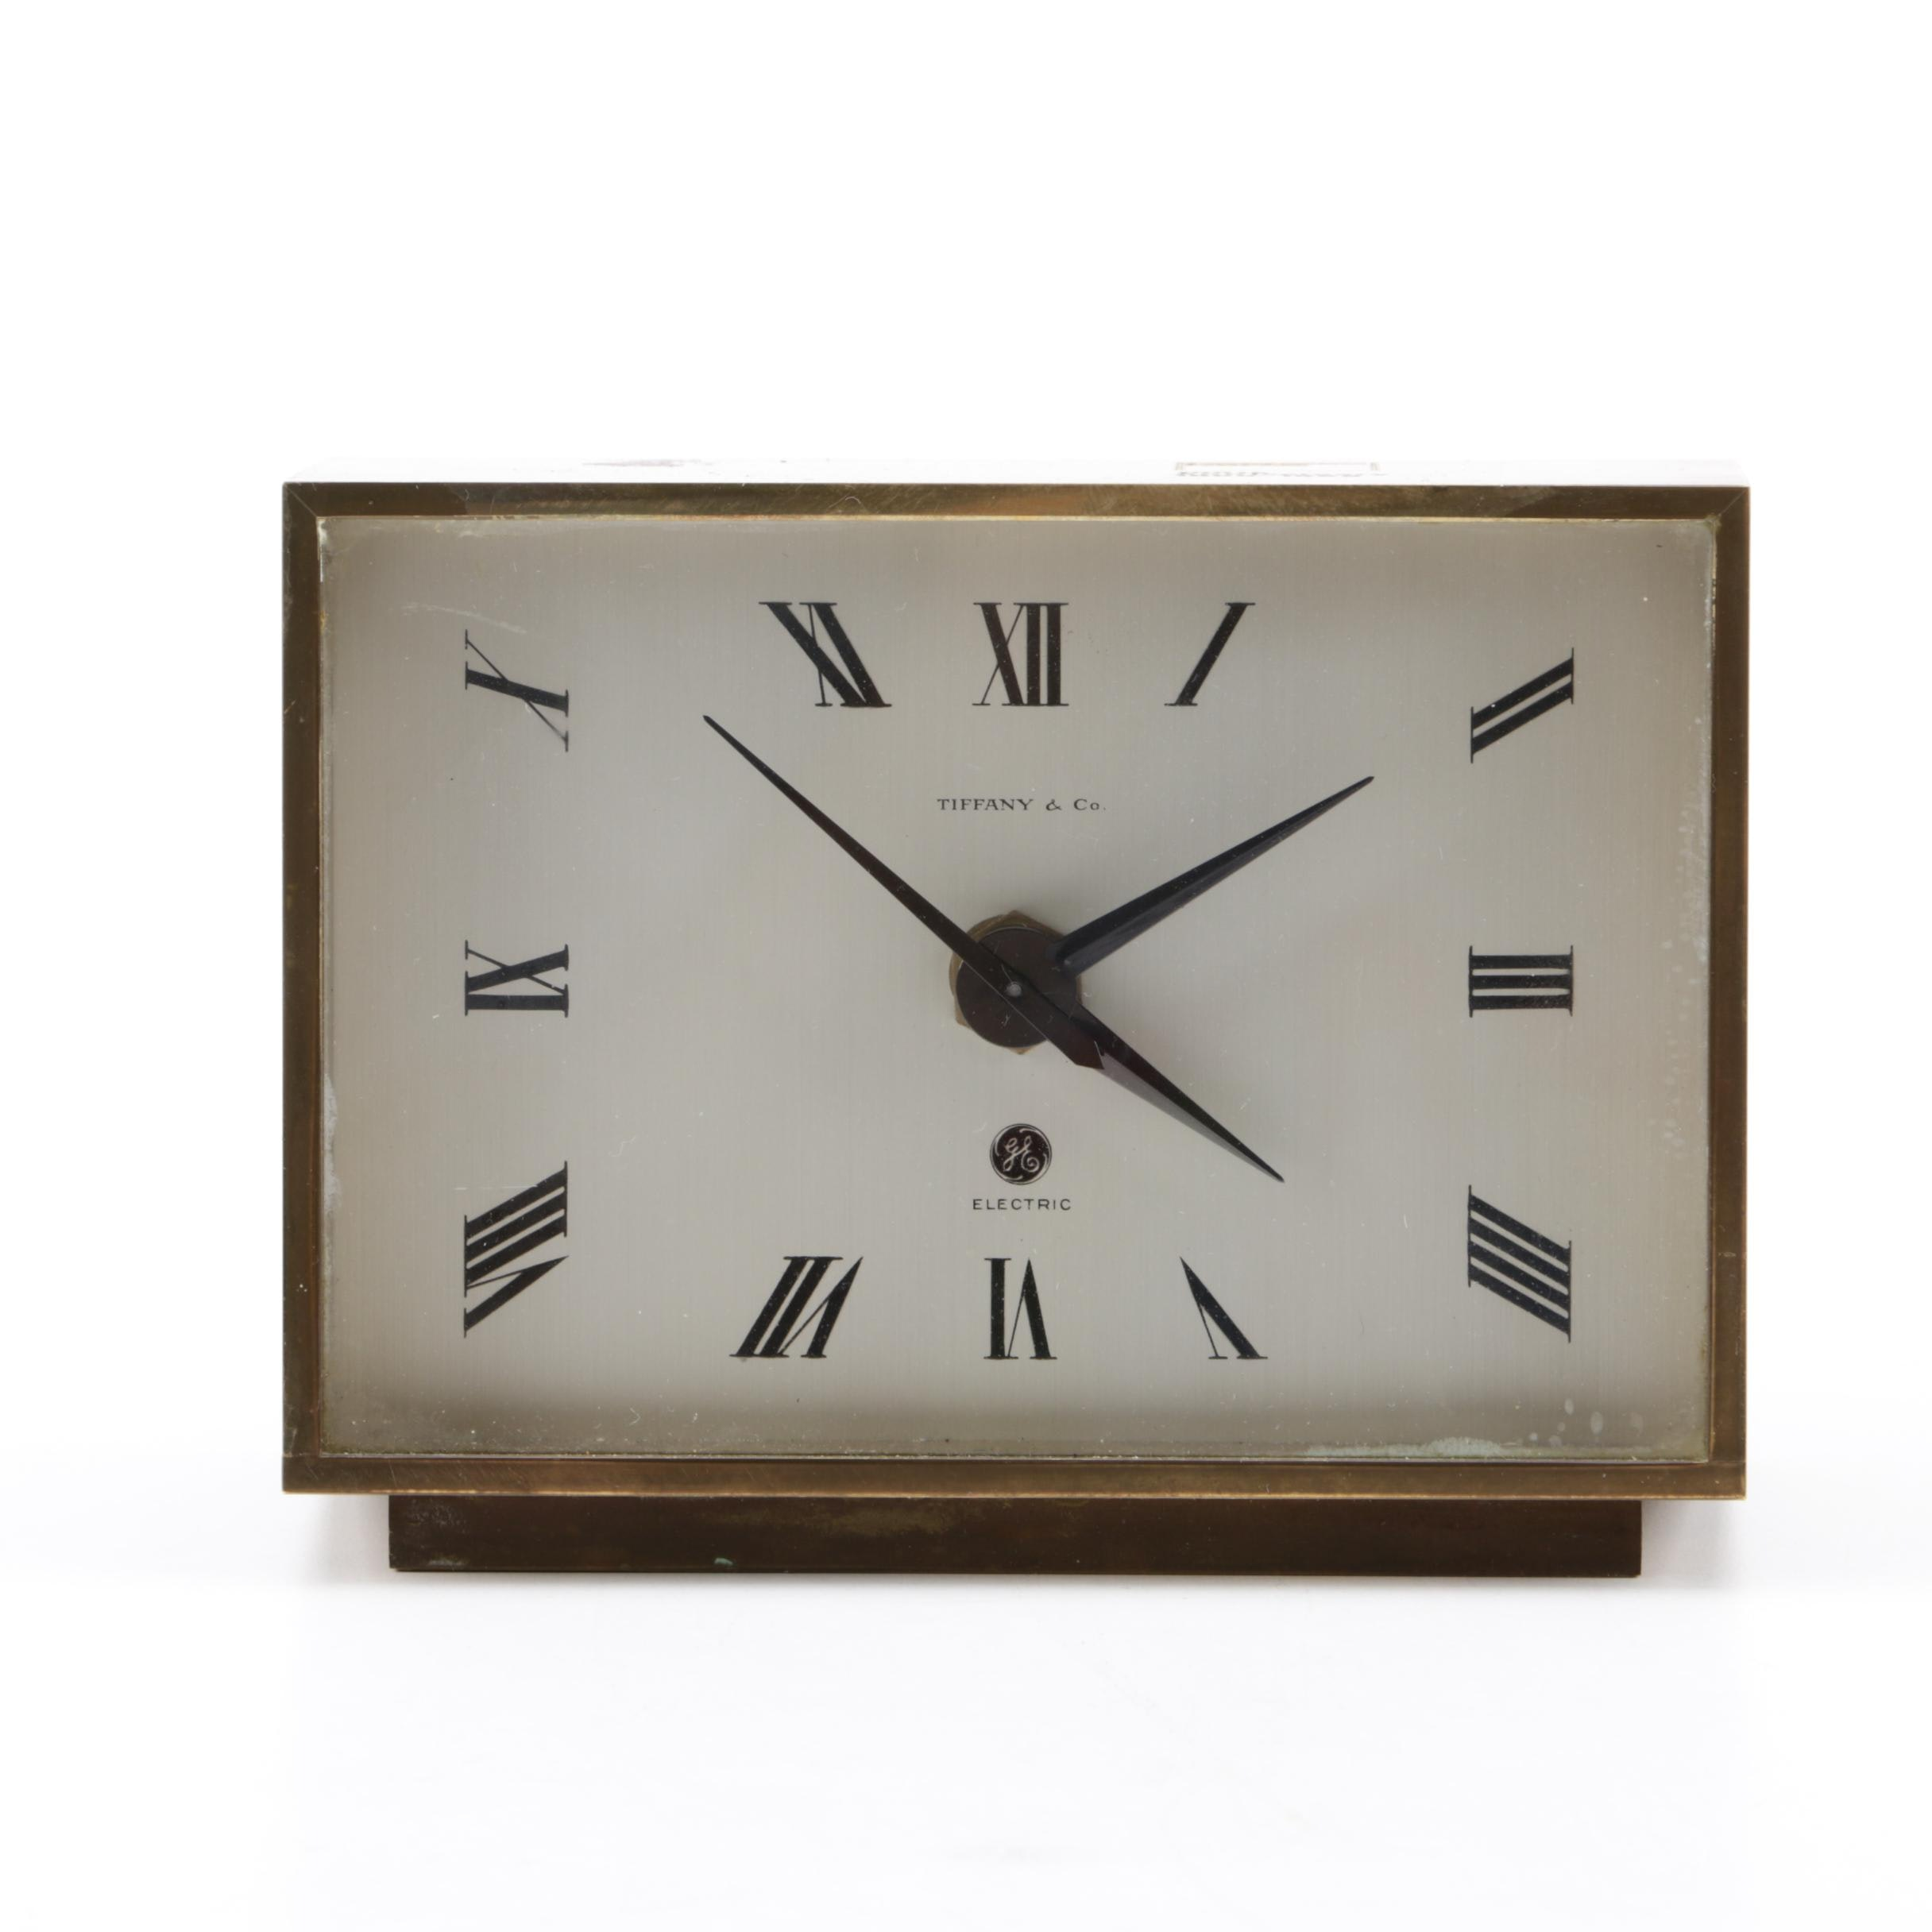 Tiffany & Co. Brass General Electric Desk Clock, Circa 1969